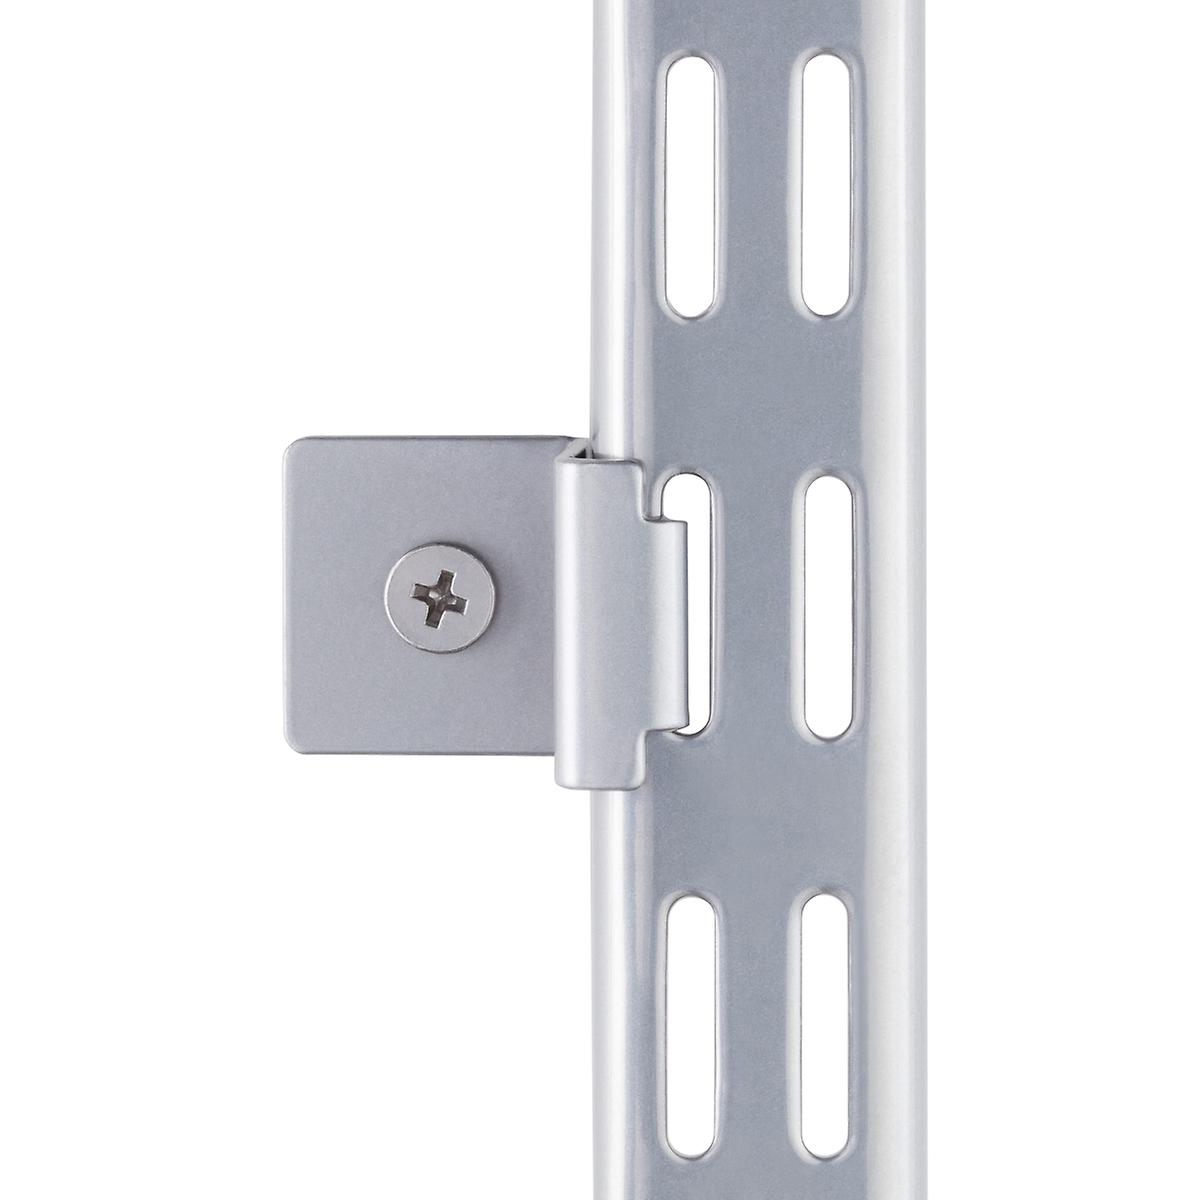 Platinum elfa Hang Standard Wall Clips